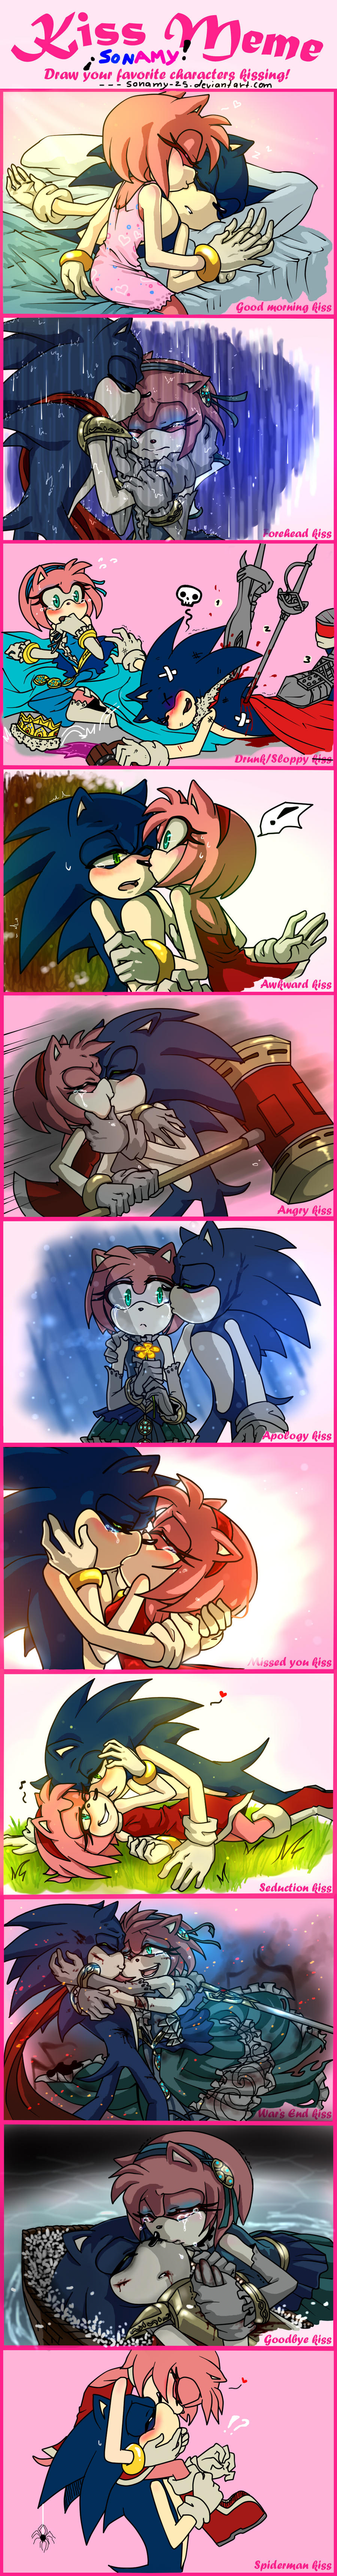 Sonamy- Meme Kiss by kalisami on DeviantArt